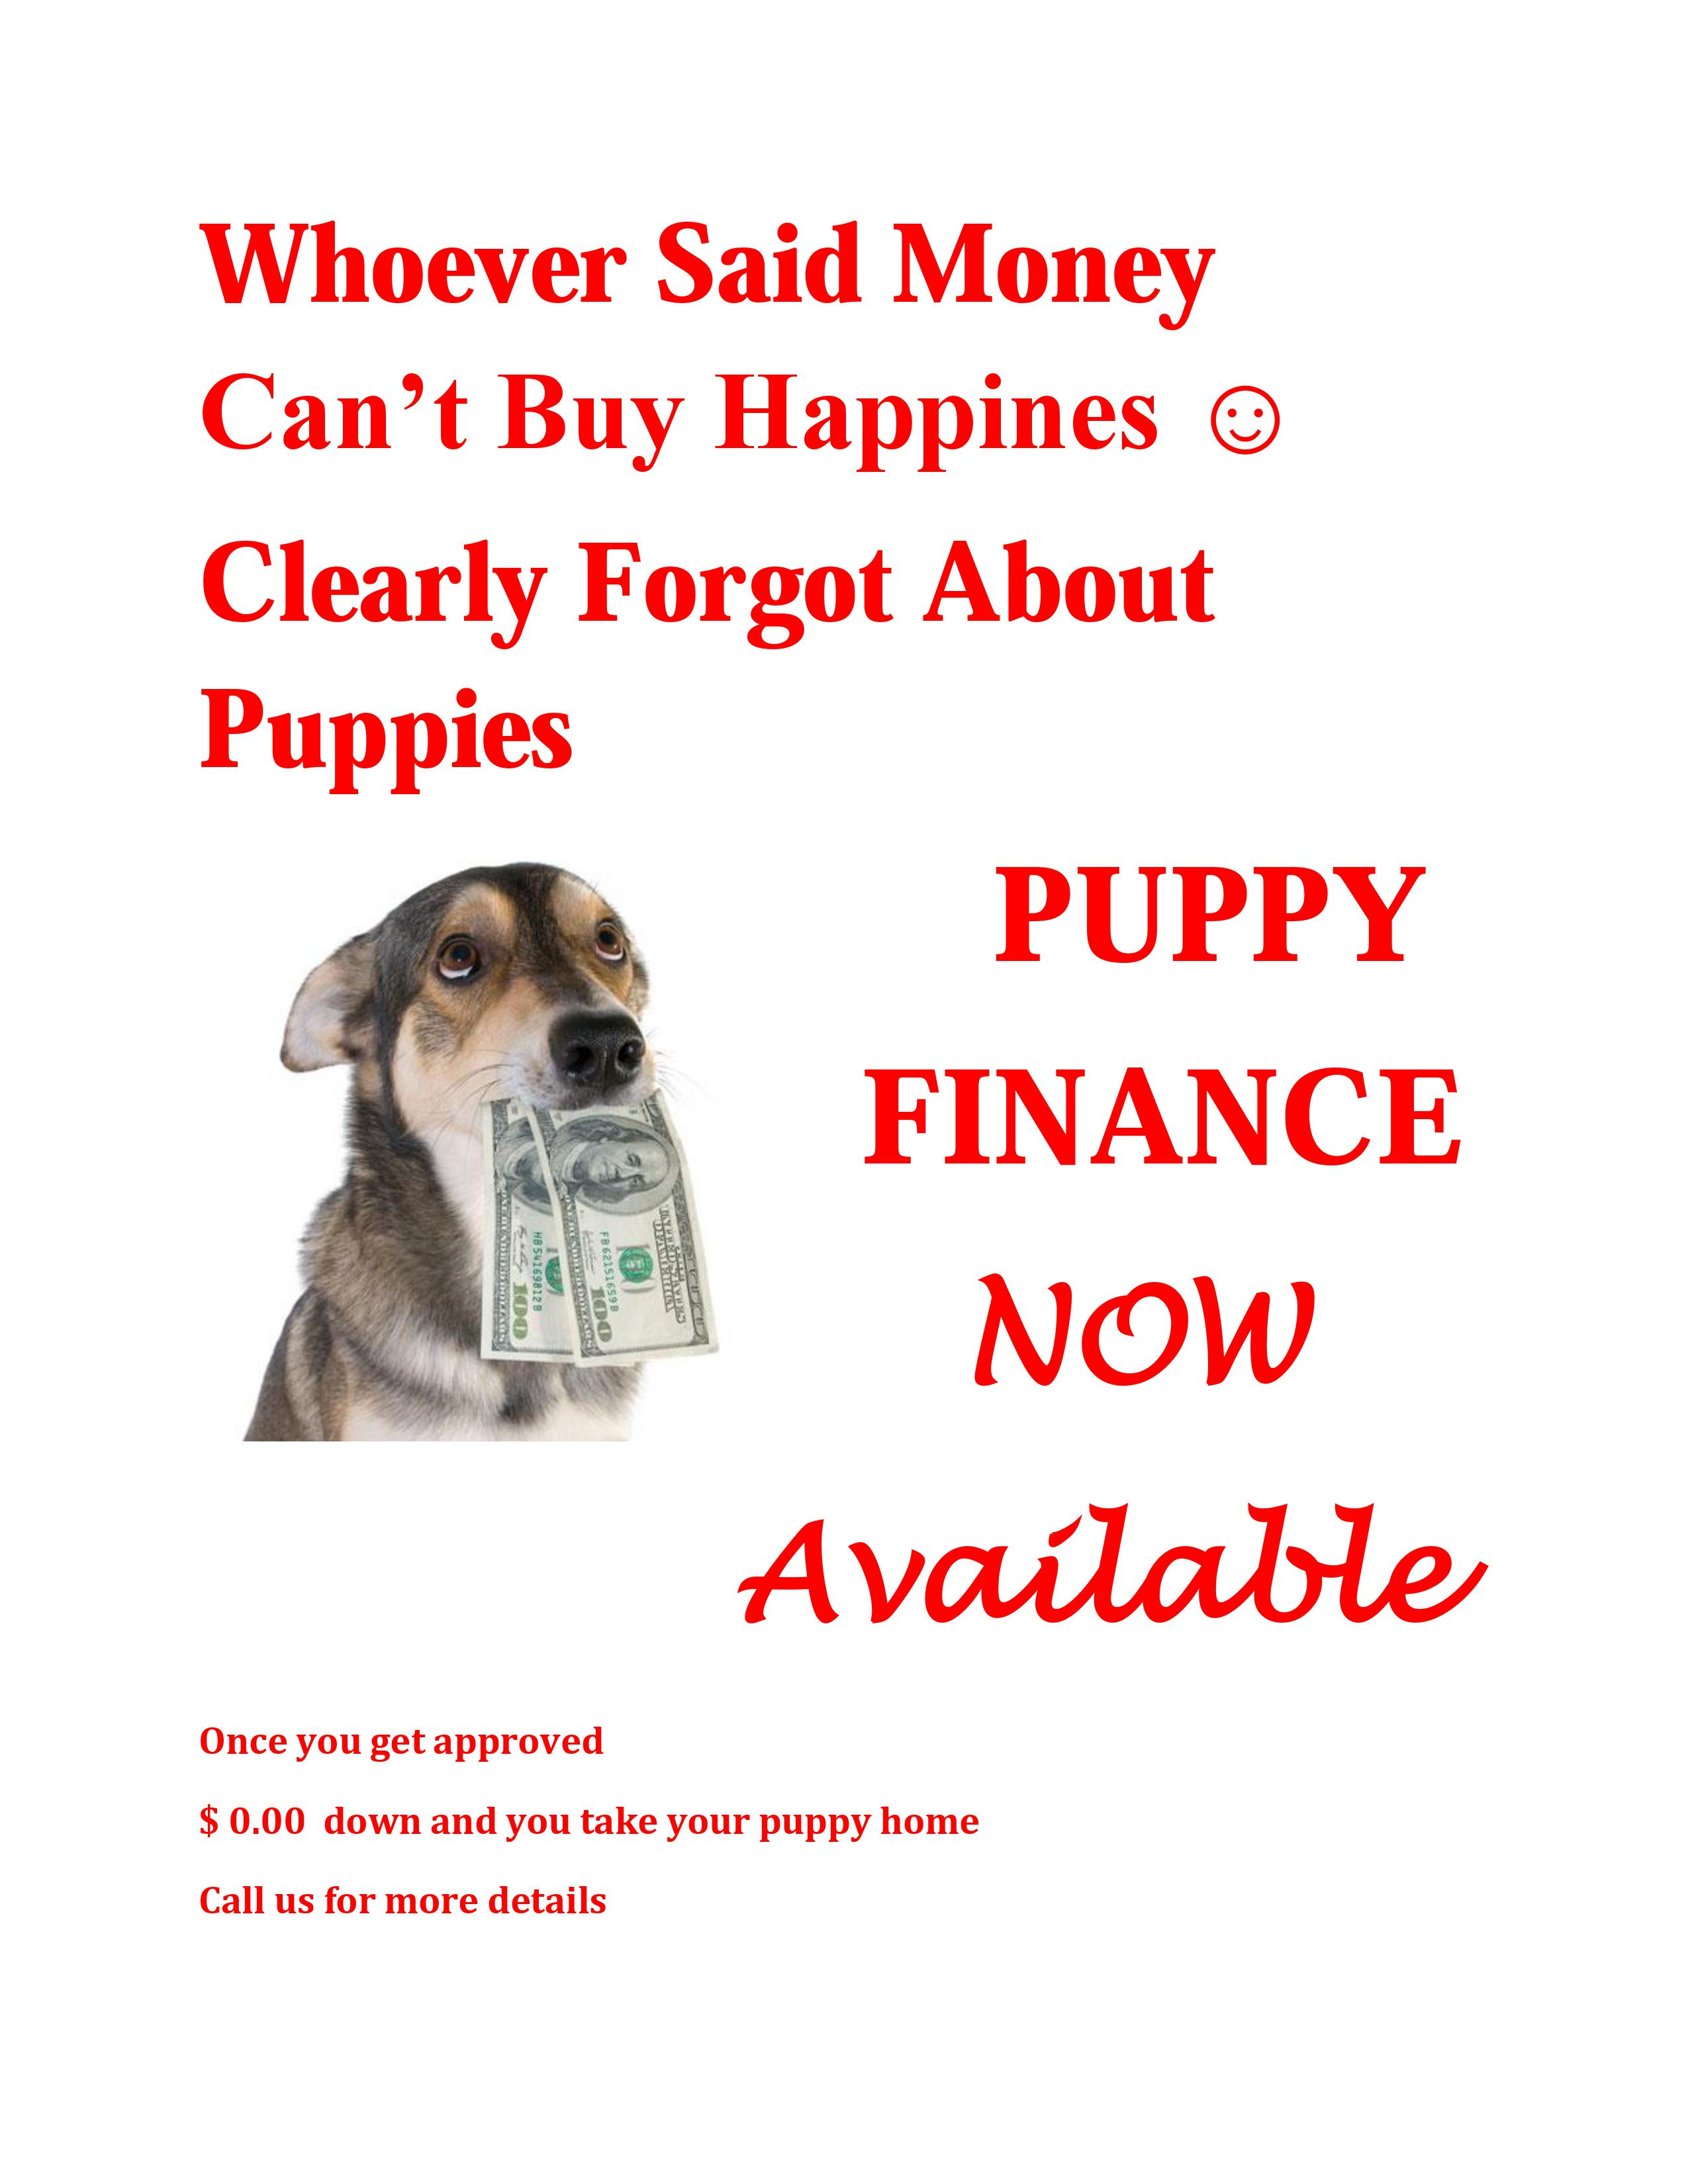 Puppy Finance | Queens Puppies and more